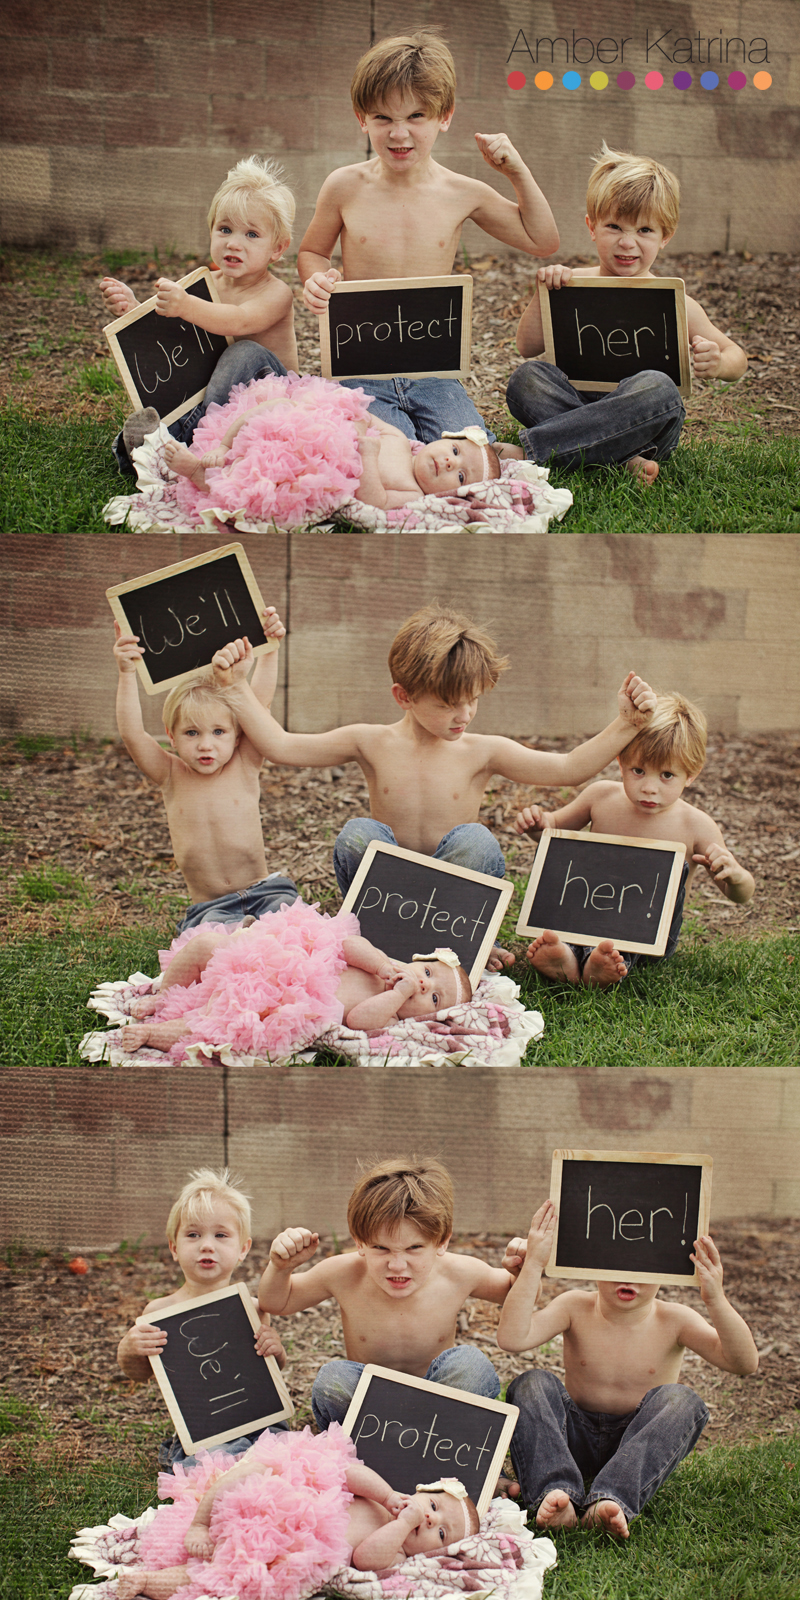 older brothers baby sister we'll protect her chalkboard signs newborn tutu